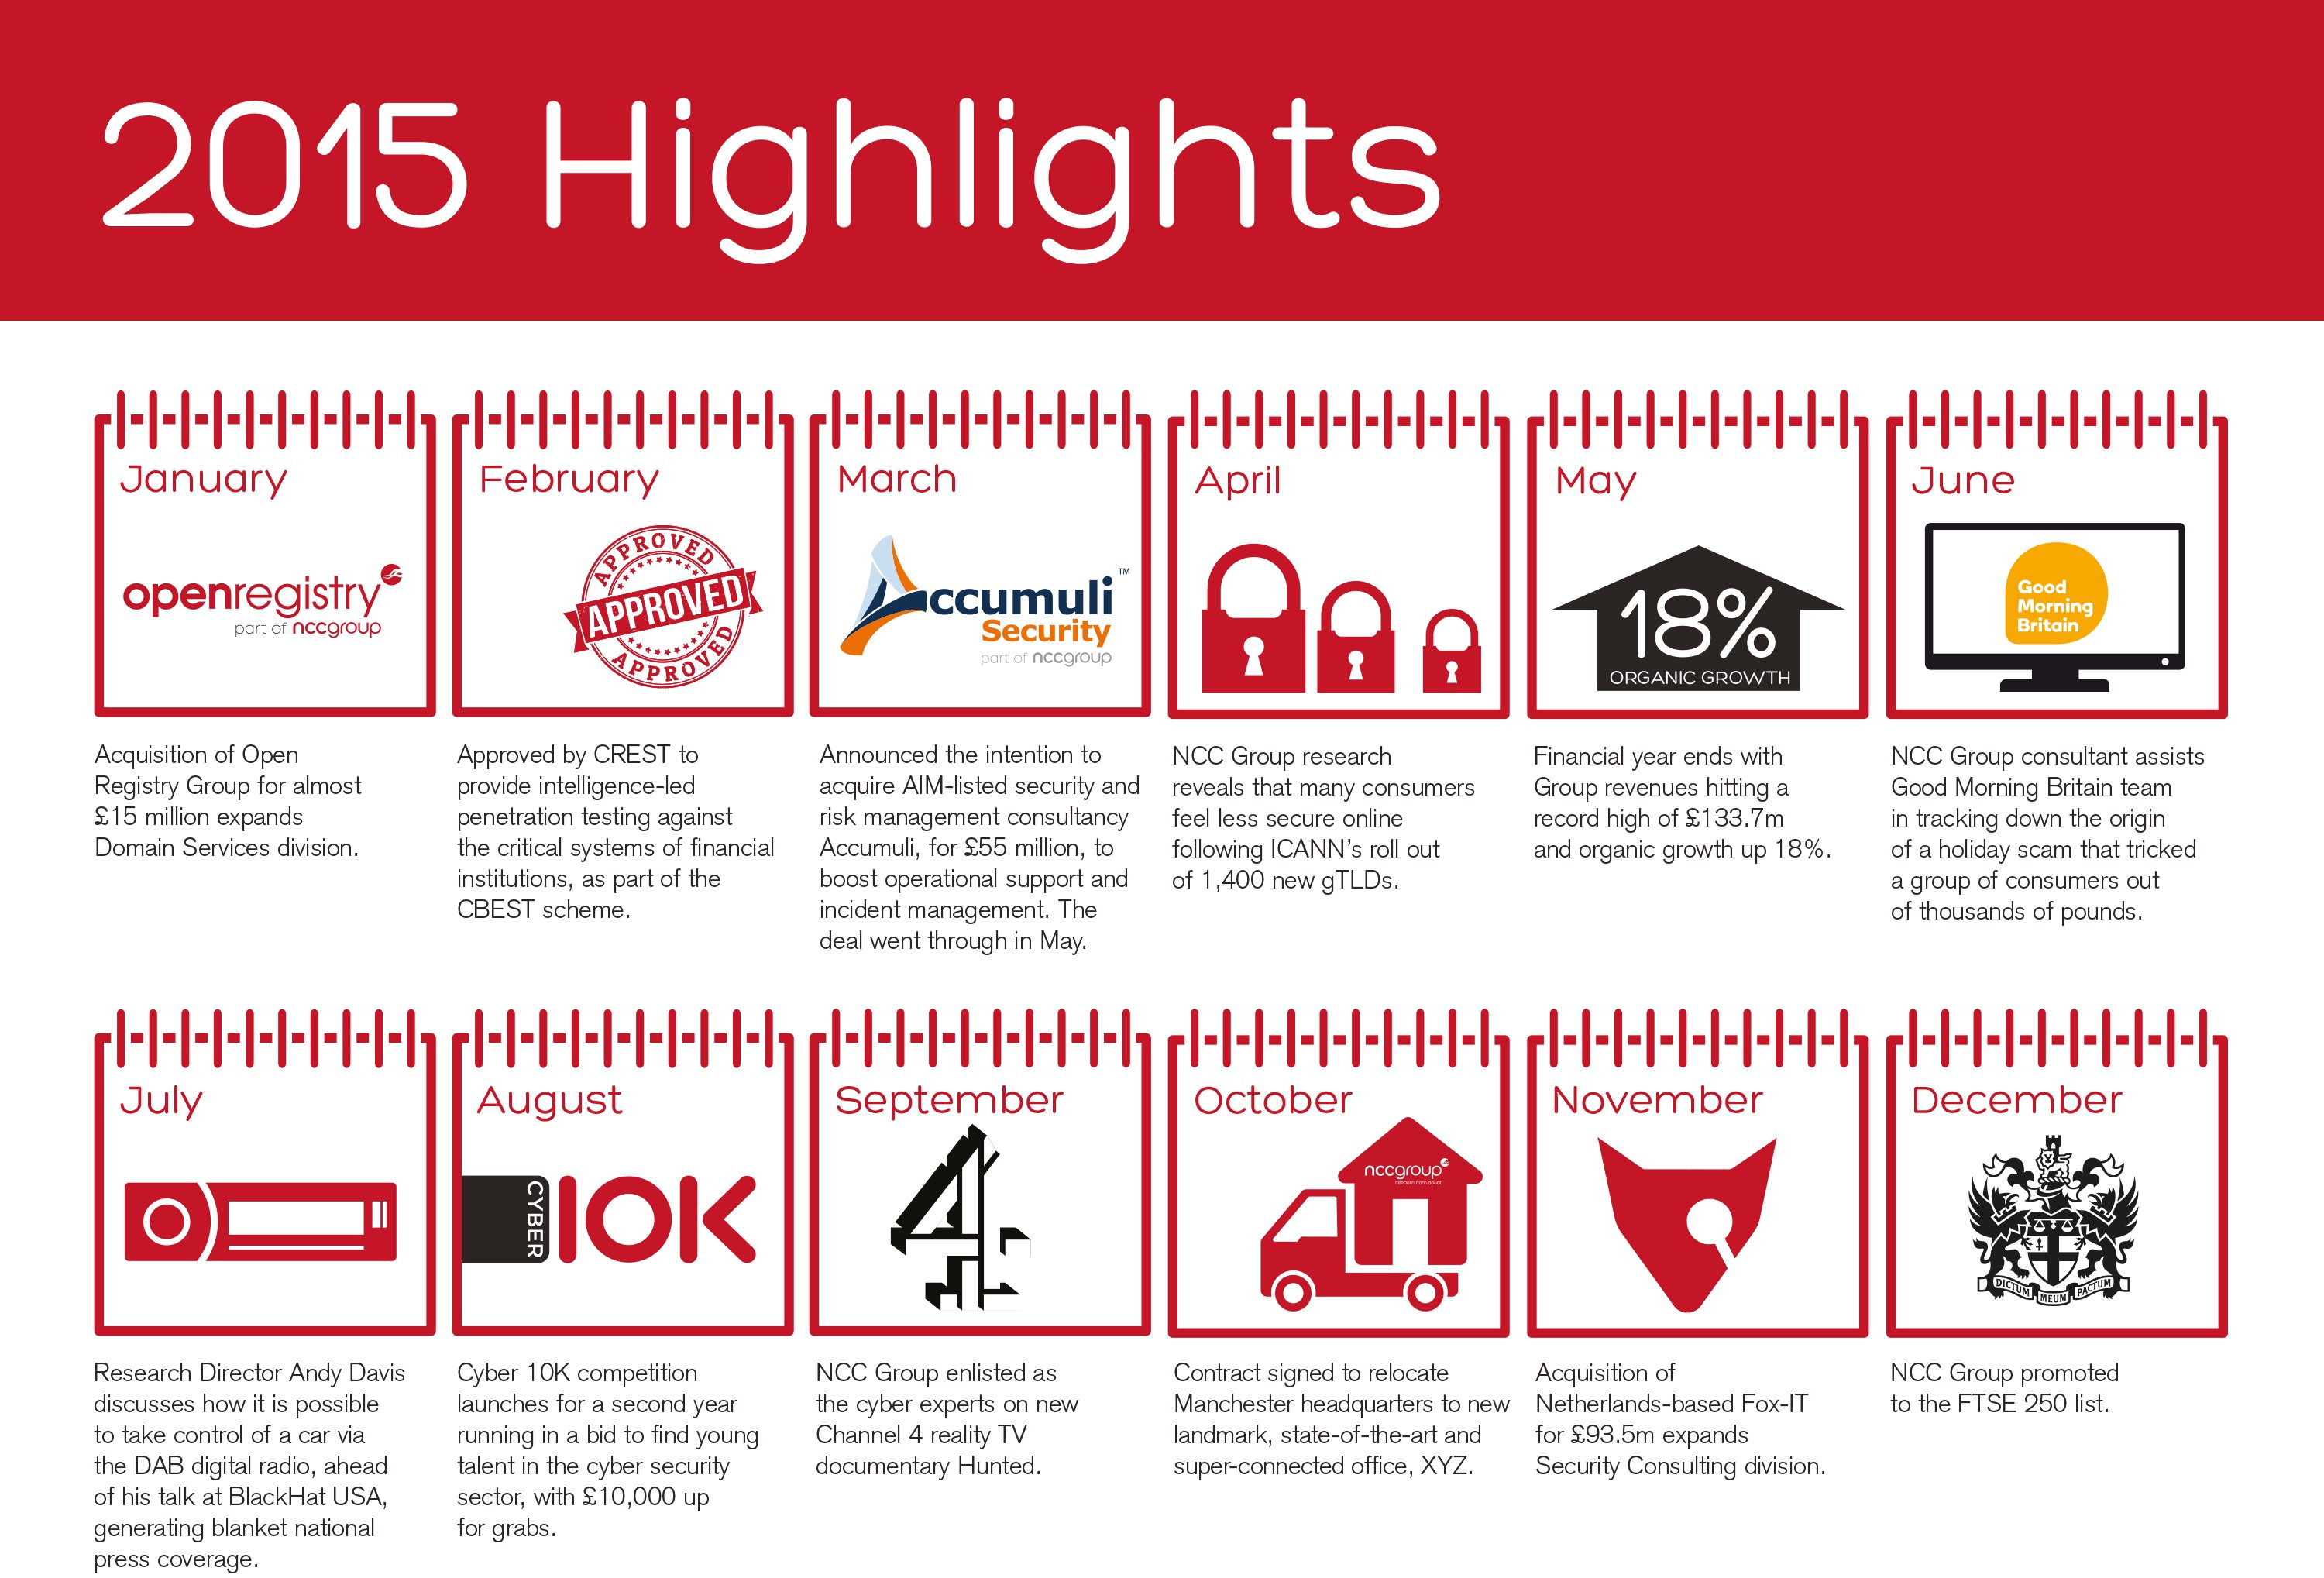 NCC Group Highlights 2015